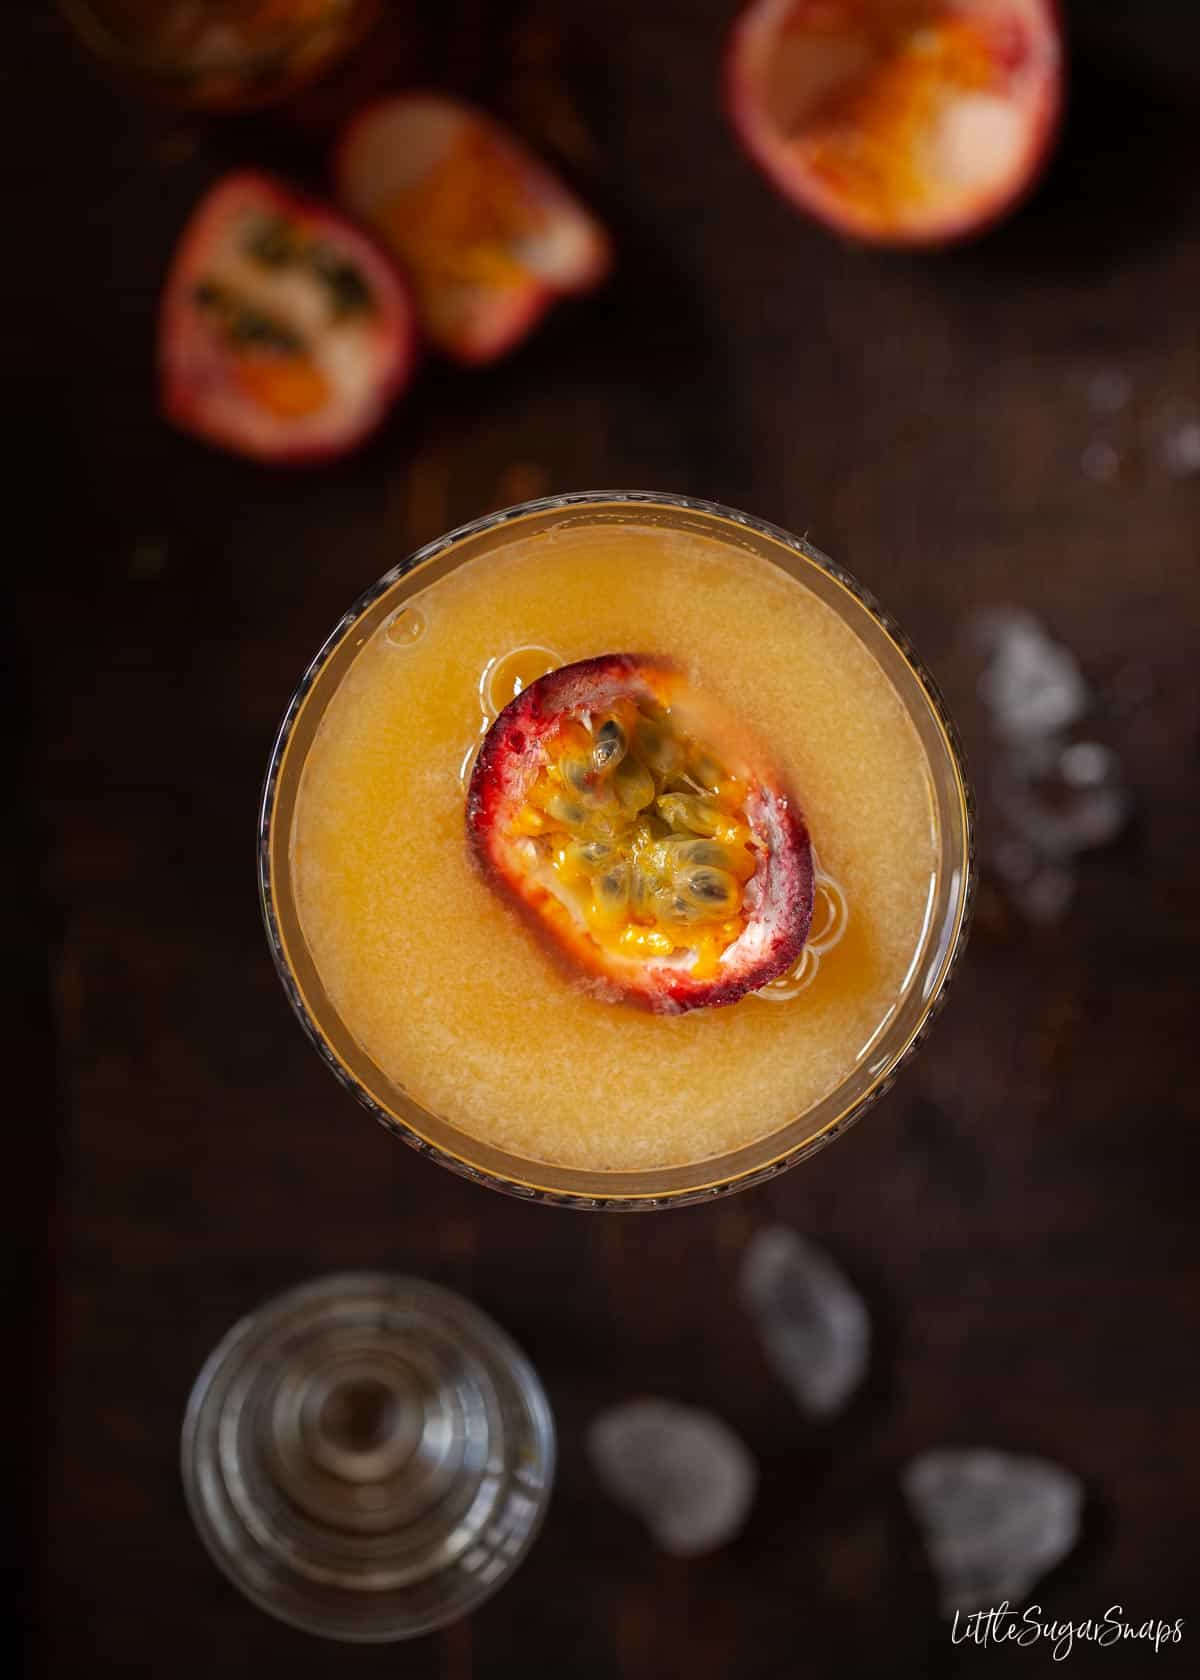 Overhead view of a passionfruit martini topped with fresh passionfruit